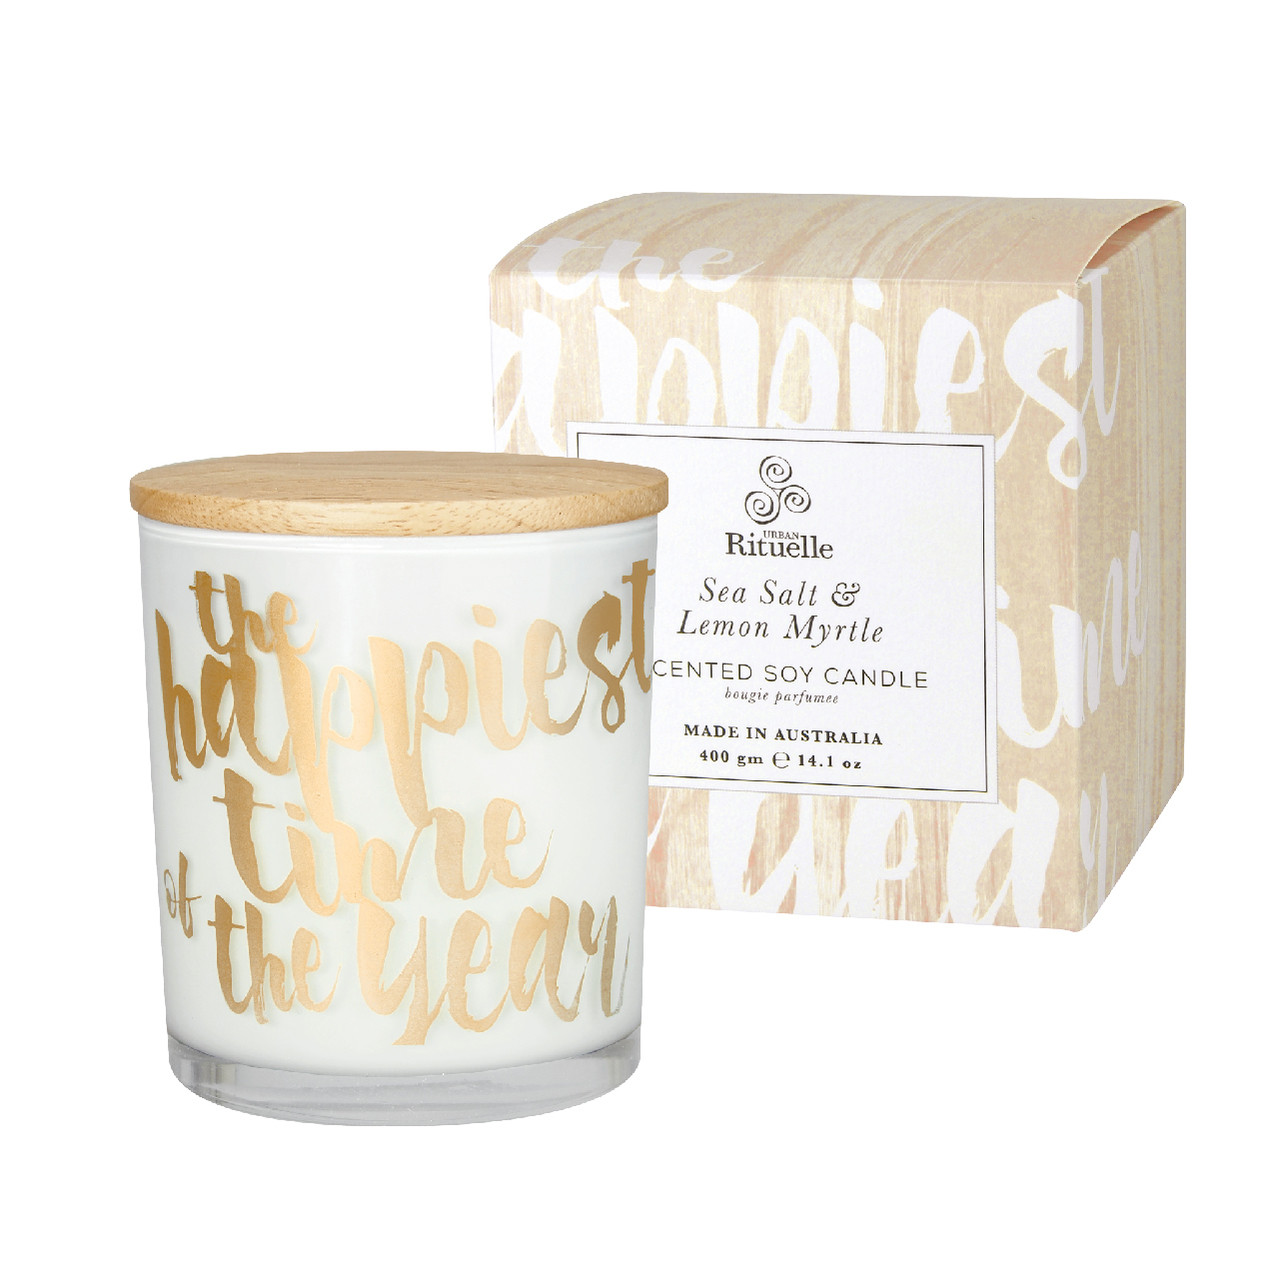 Summer Holiday - Sea Salt & Lemon Myrtle - Scented Soy Candle - Urban Rituelle